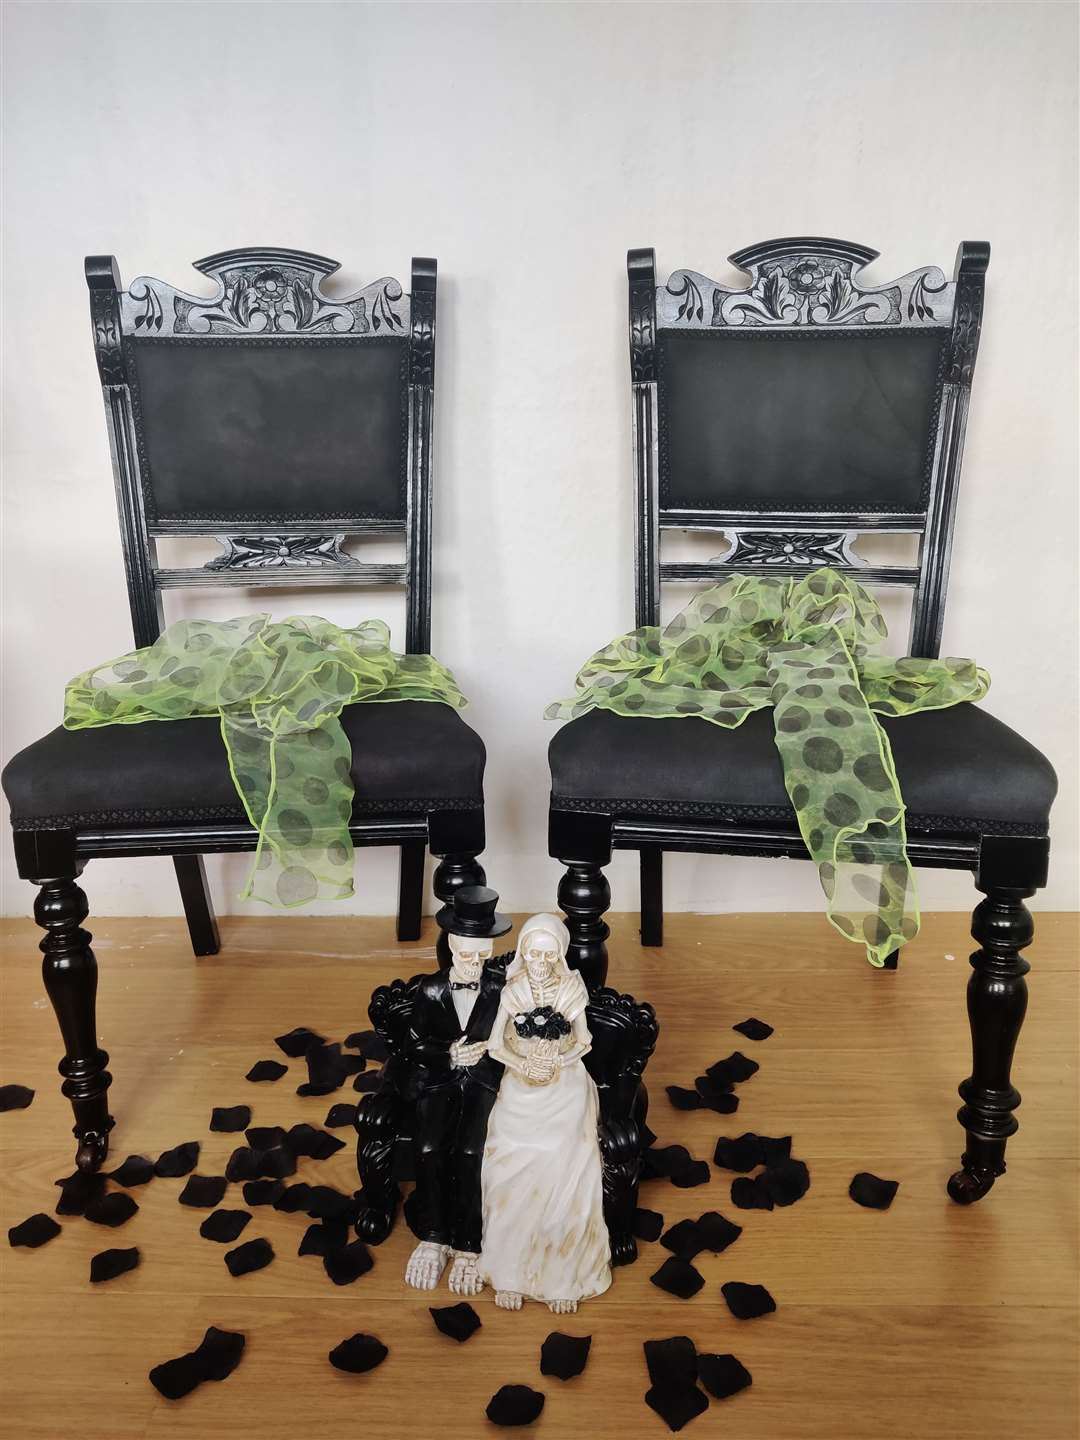 Rent Gothic themed chairs and cake decorations at Dark Broomsticks (50075860)